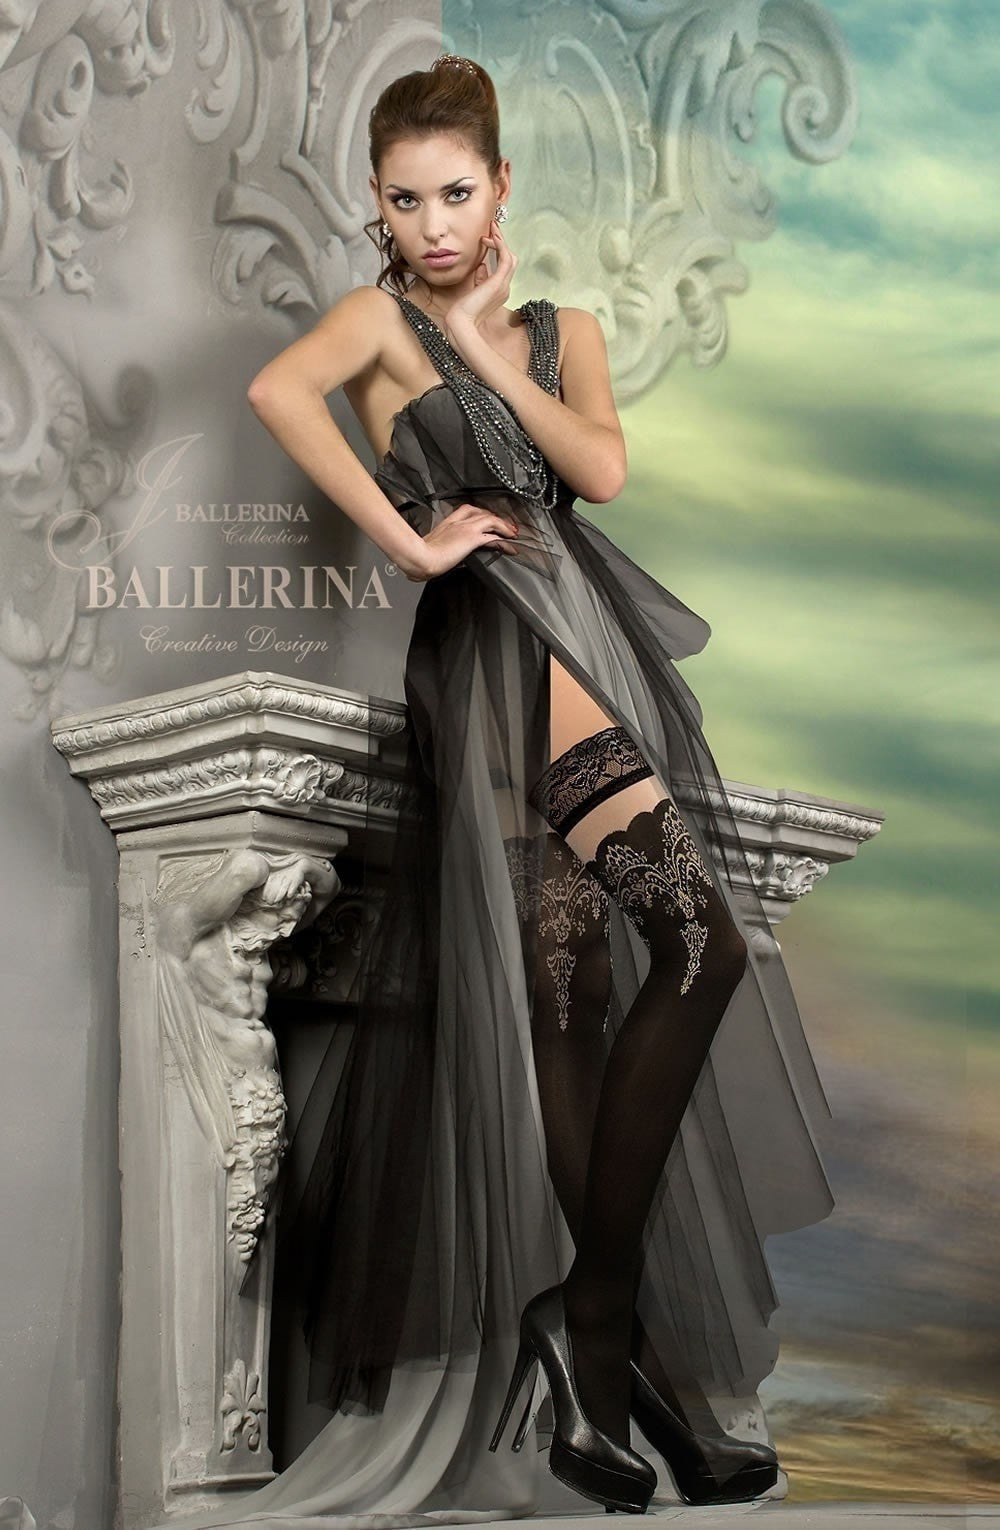 Ballerina Hold Ups 220 (Black) - Hold Up Stockings - Ballerina - Charm and Lace Boutique